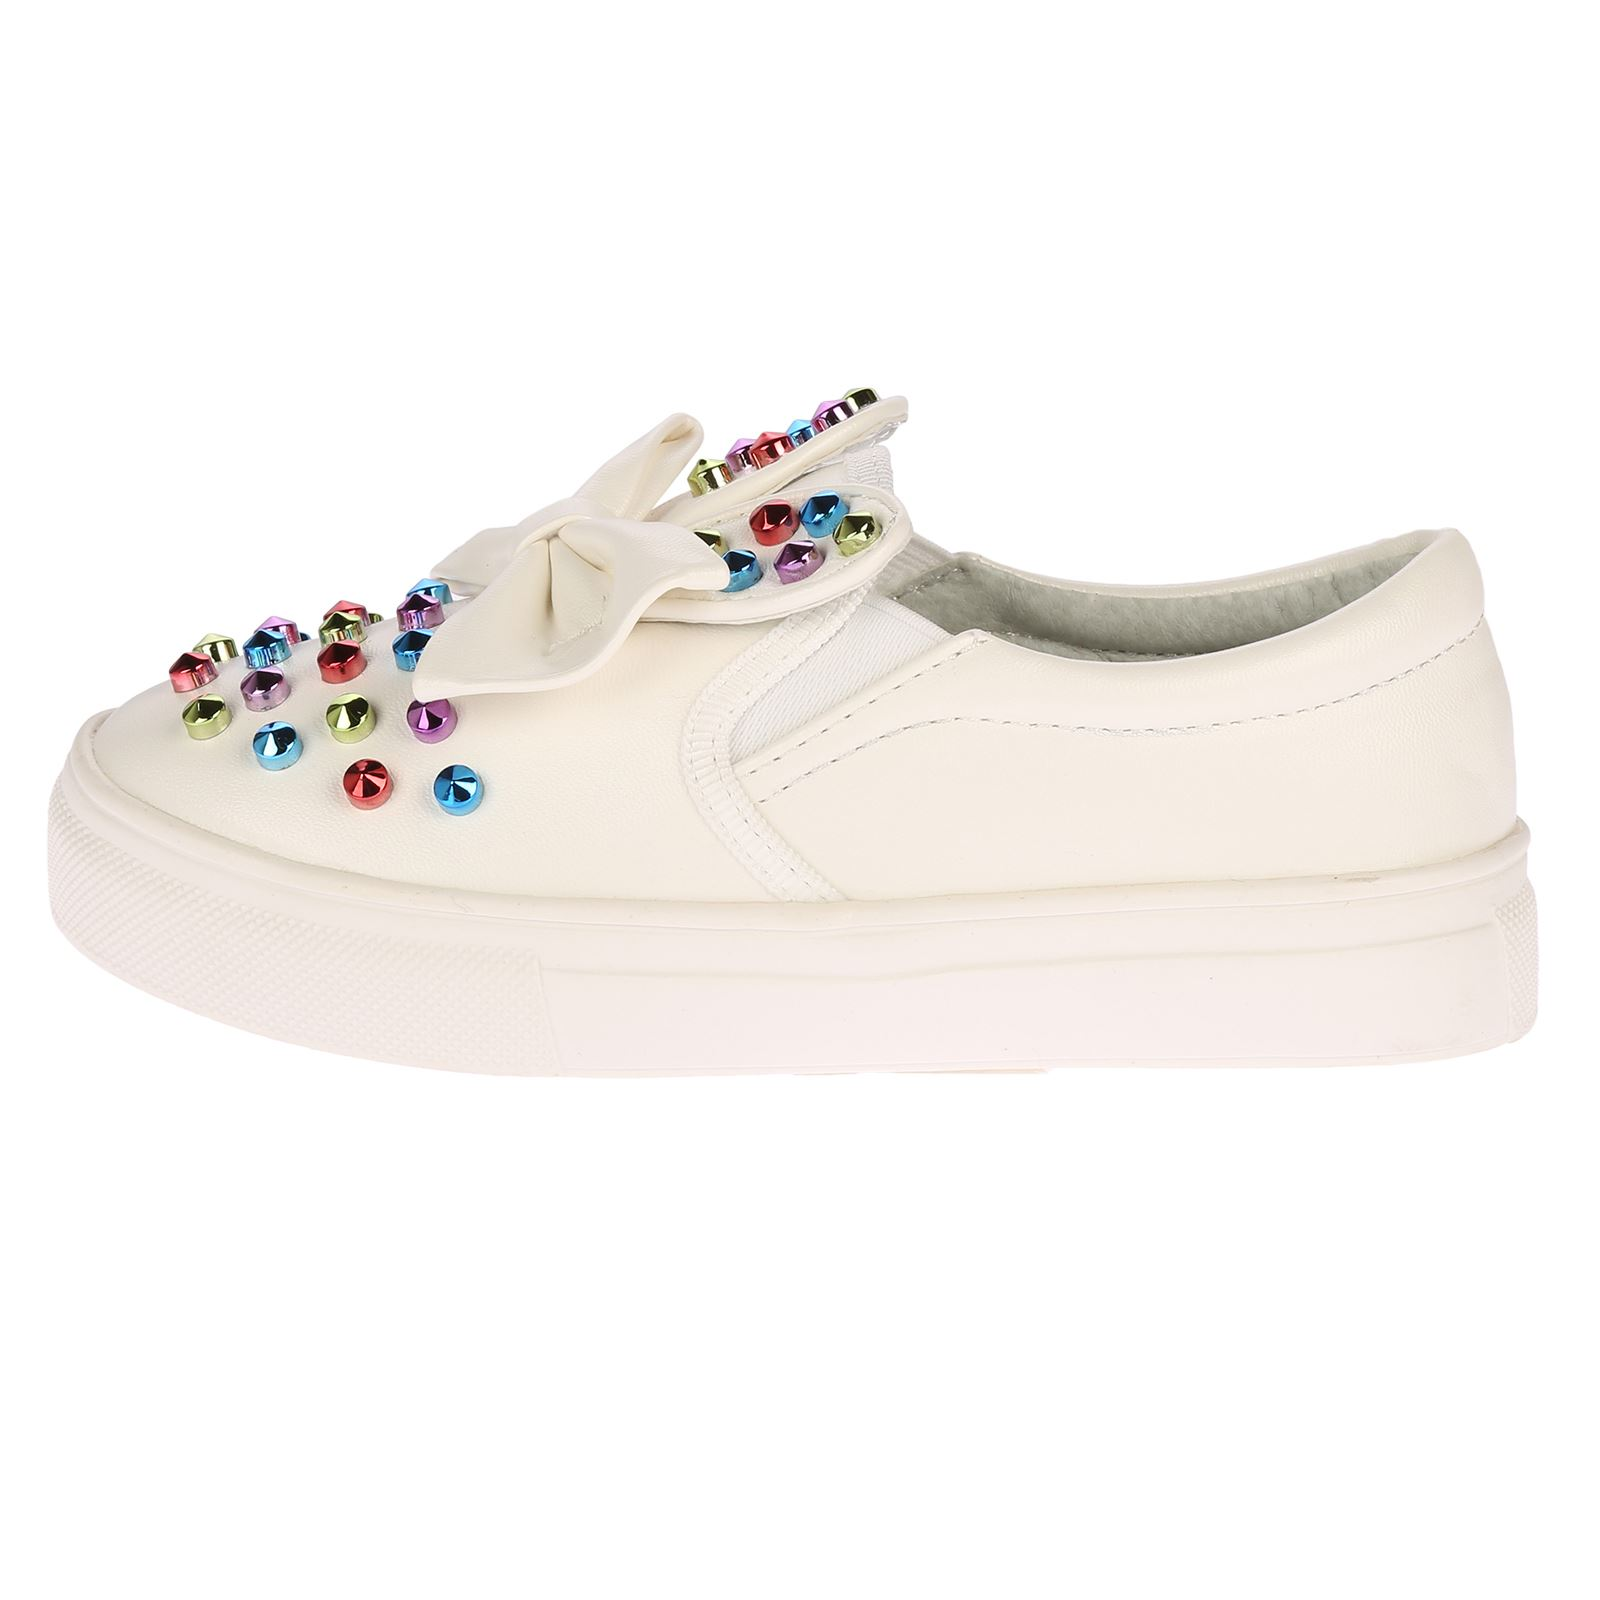 NEW GIRLS FLATS CHILDRENS KIDS PUMPS PLIMSOLLS SCHOOL TRAINERS STUDDED SHOES